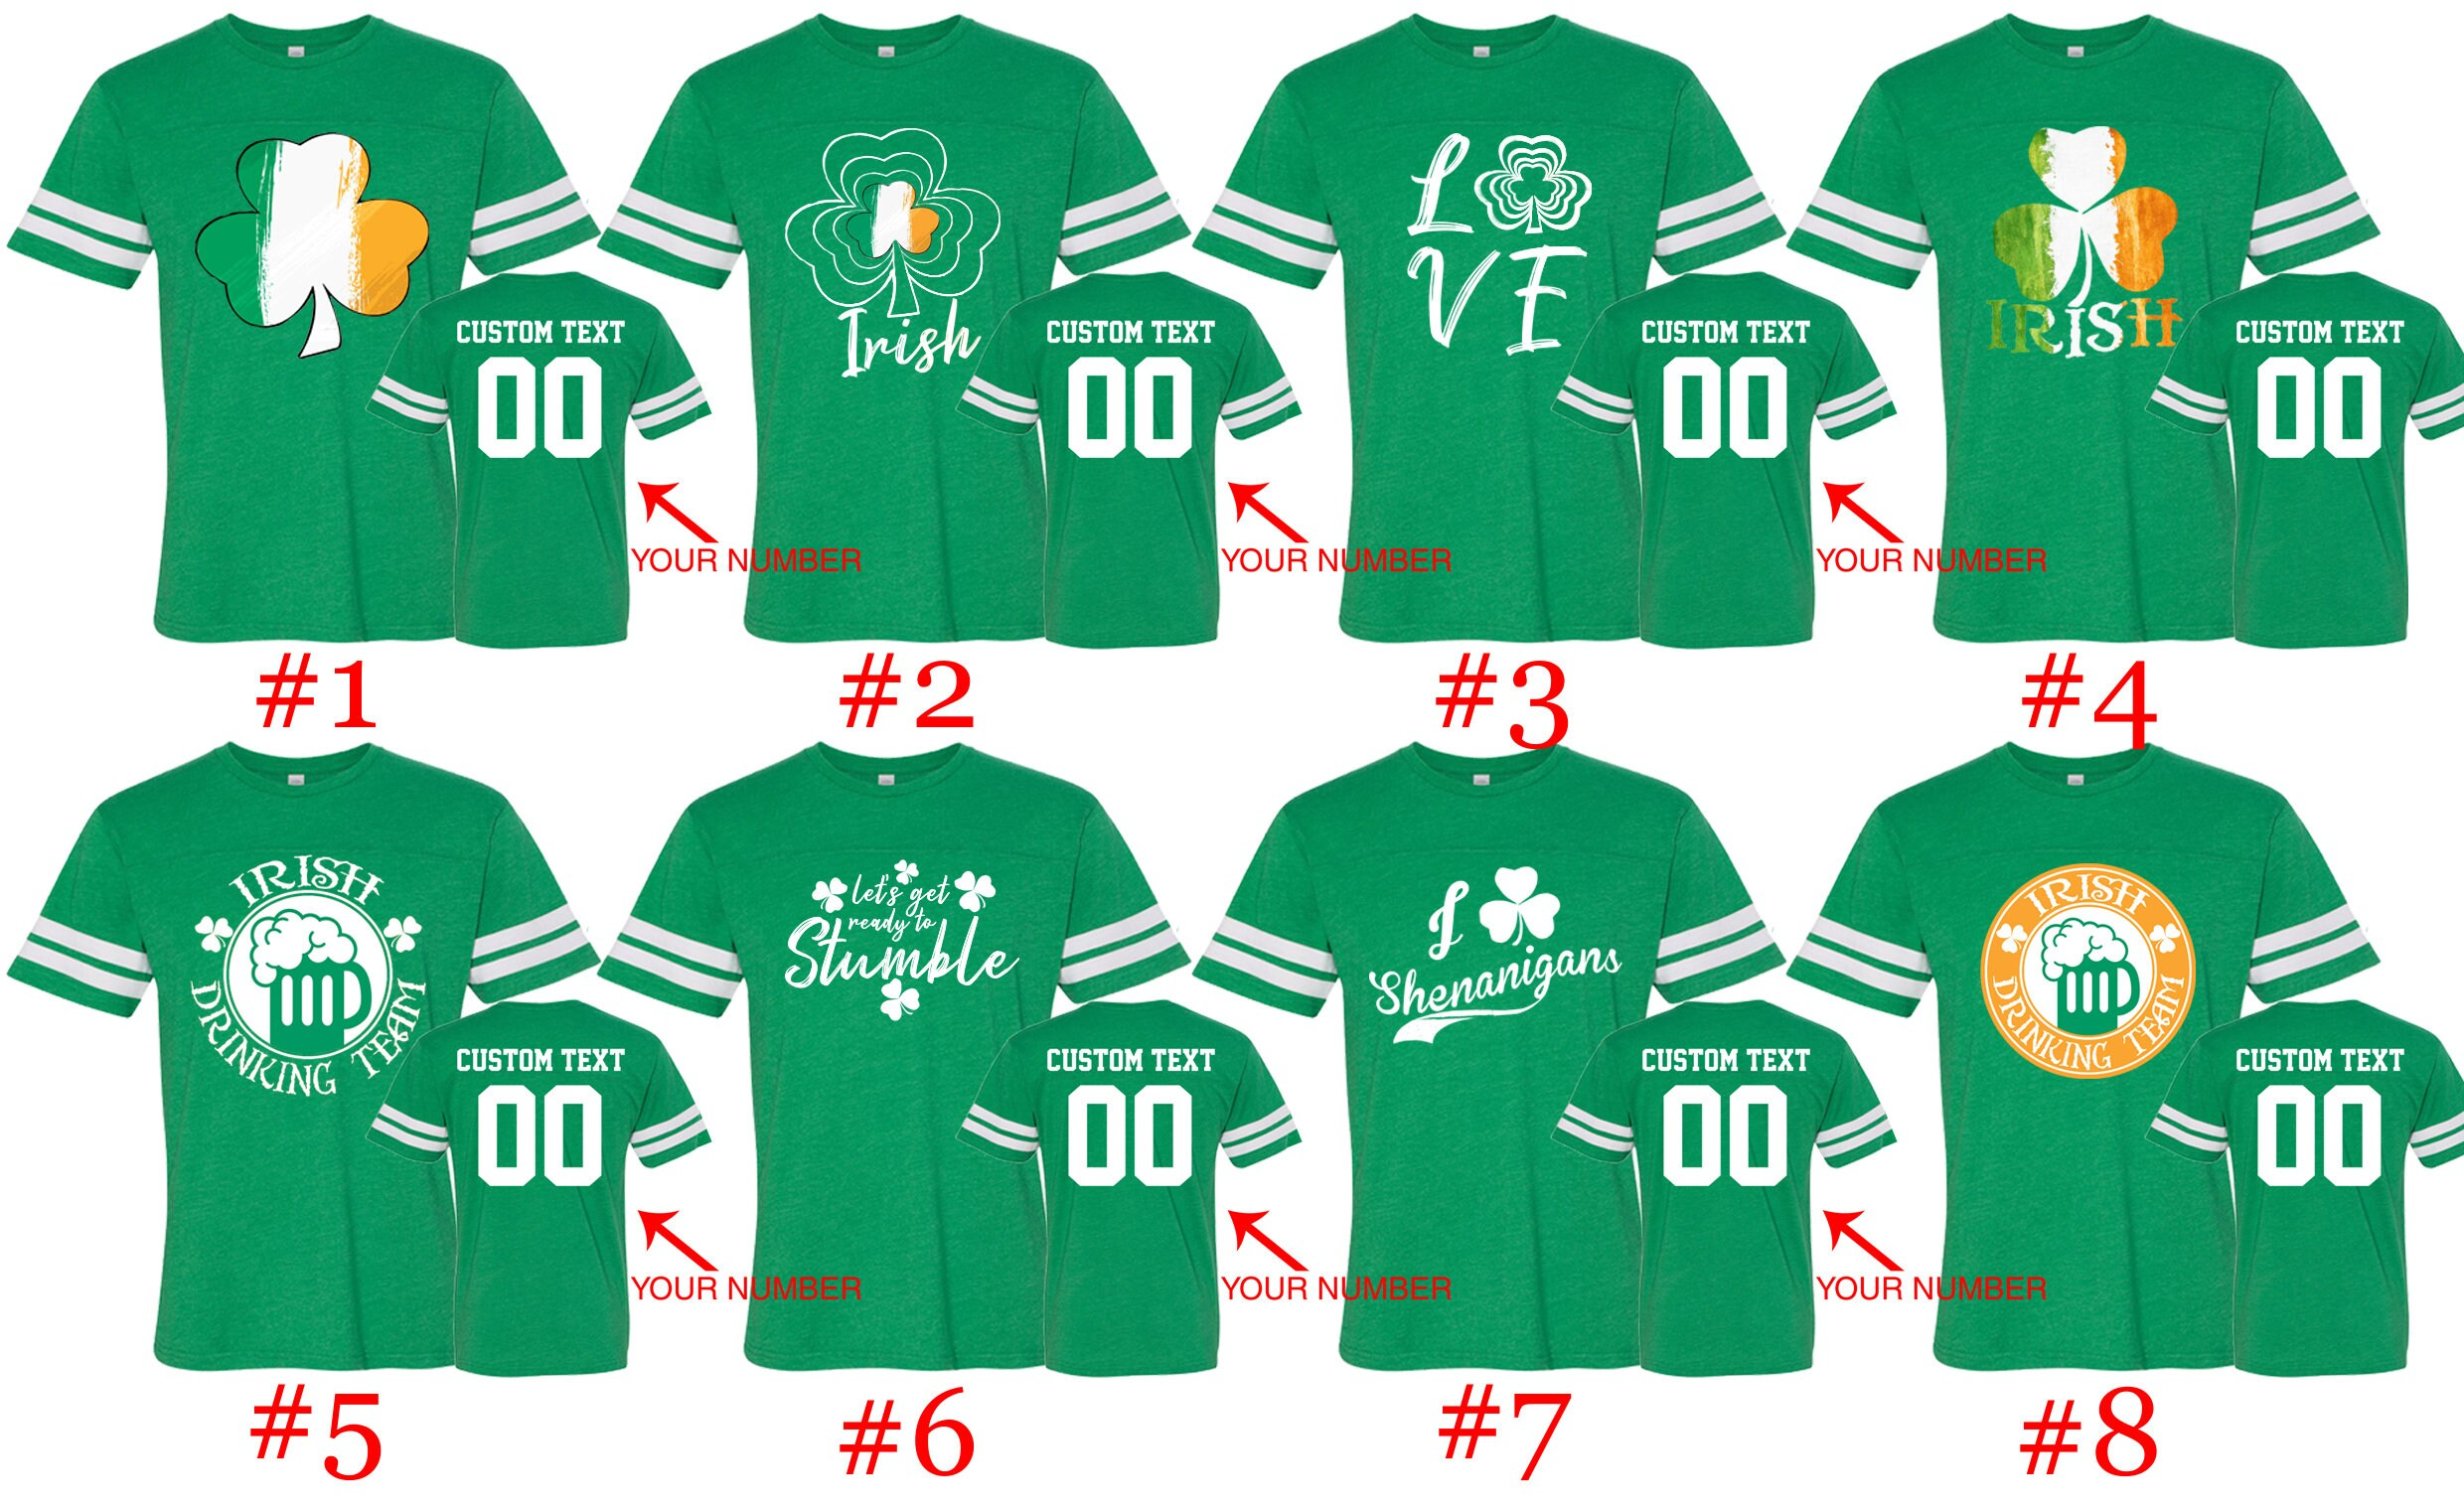 b8dd86a8 Customized St. Patty Jersey Shirts Name and Number St Patrick   Etsy